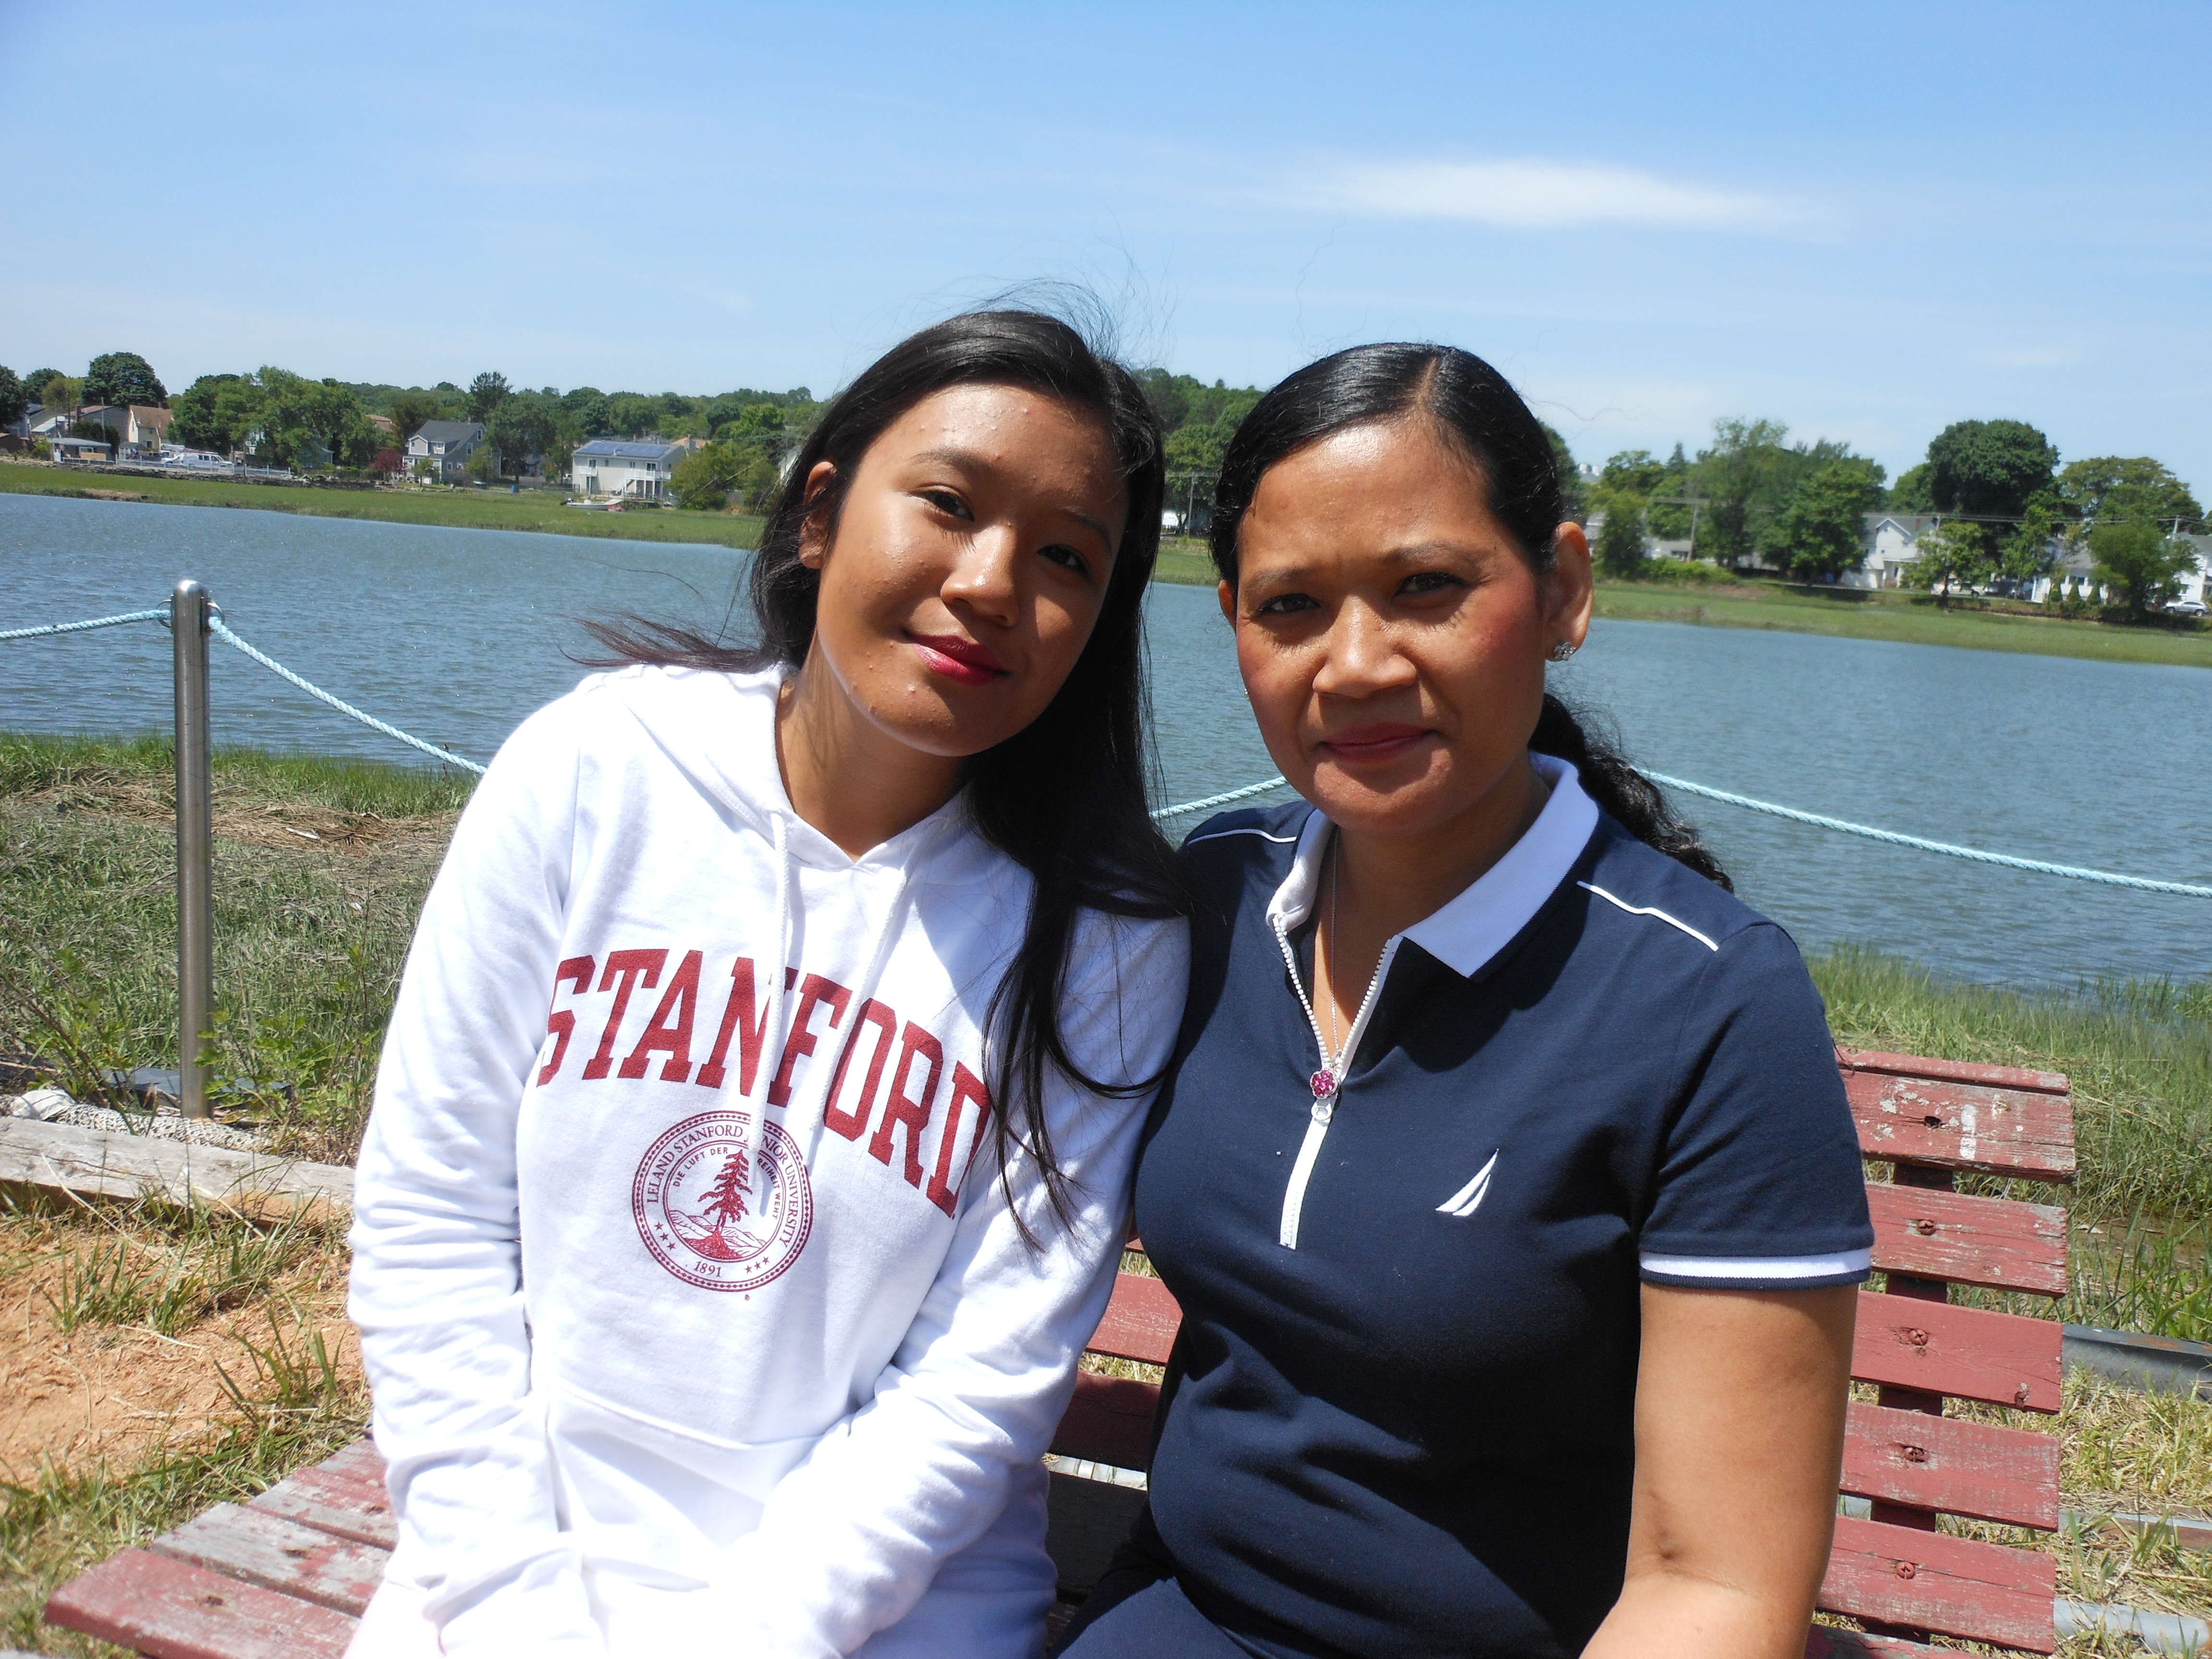 """A STAR STUDENT WITH HER HERO: Victoria Chiek, left, calls her mother, Van Son, her """"biggest hero."""" Chiek credits her educational success – the top of her class at Kipp Academy in Lynn and college-bound on a scholarship to Stanford University in the fall – to her mom, who had her reading at an early age and attending a preschool when she was two years and nine months old. Here, the high school graduate and her mom relax in the backyard near the Saugus River."""